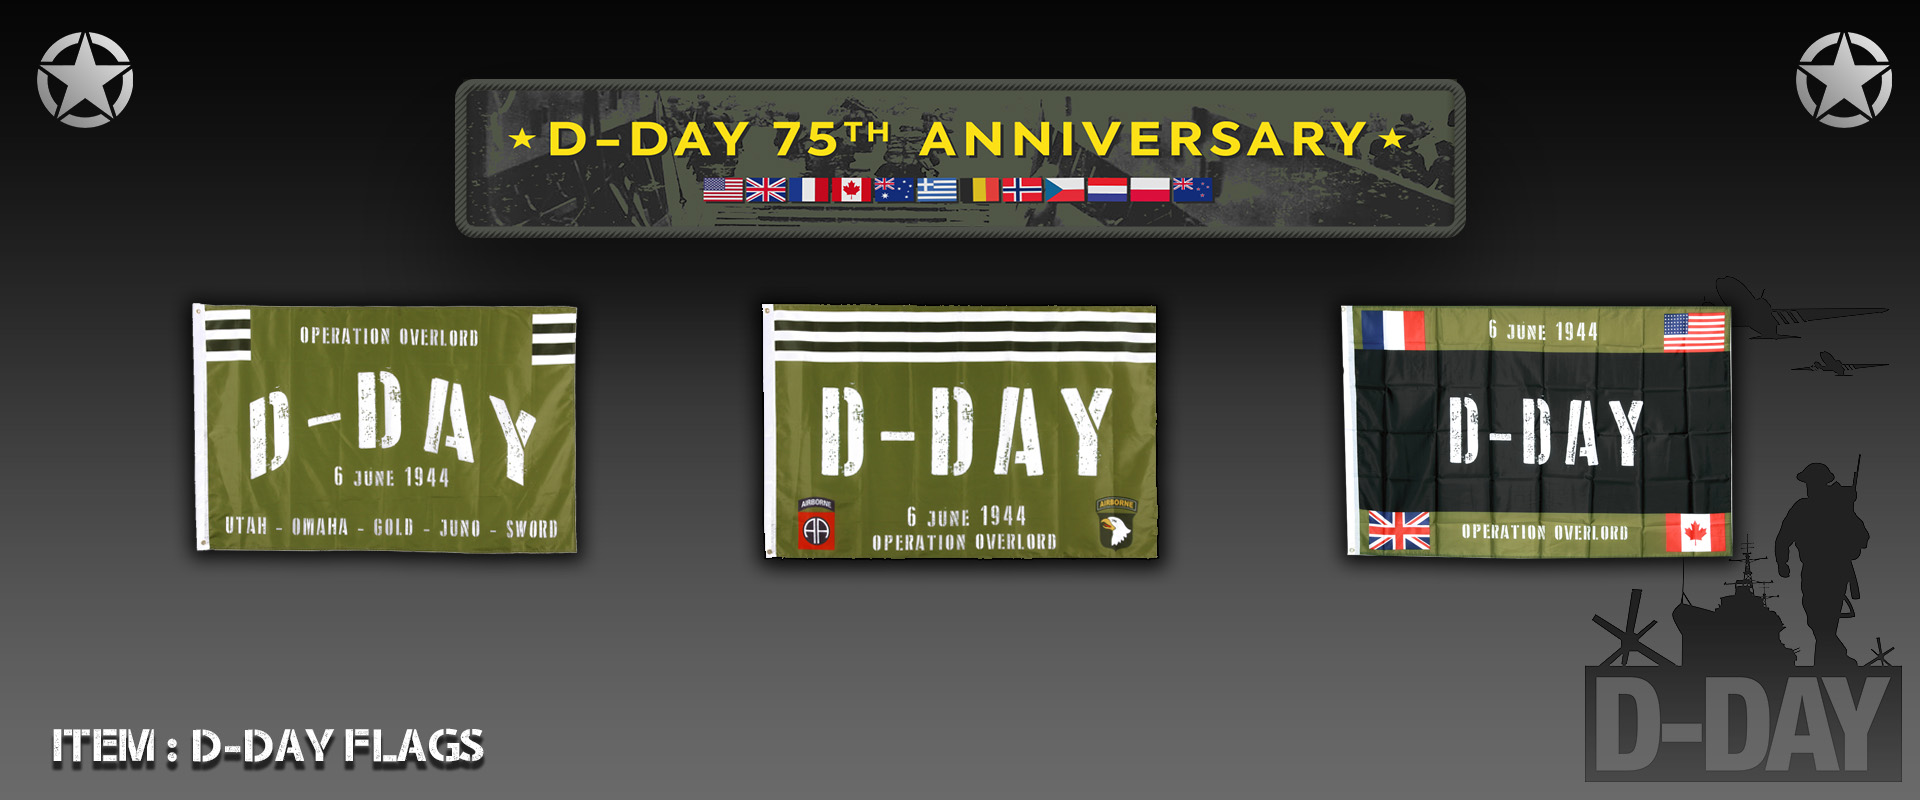 D-Day Flags